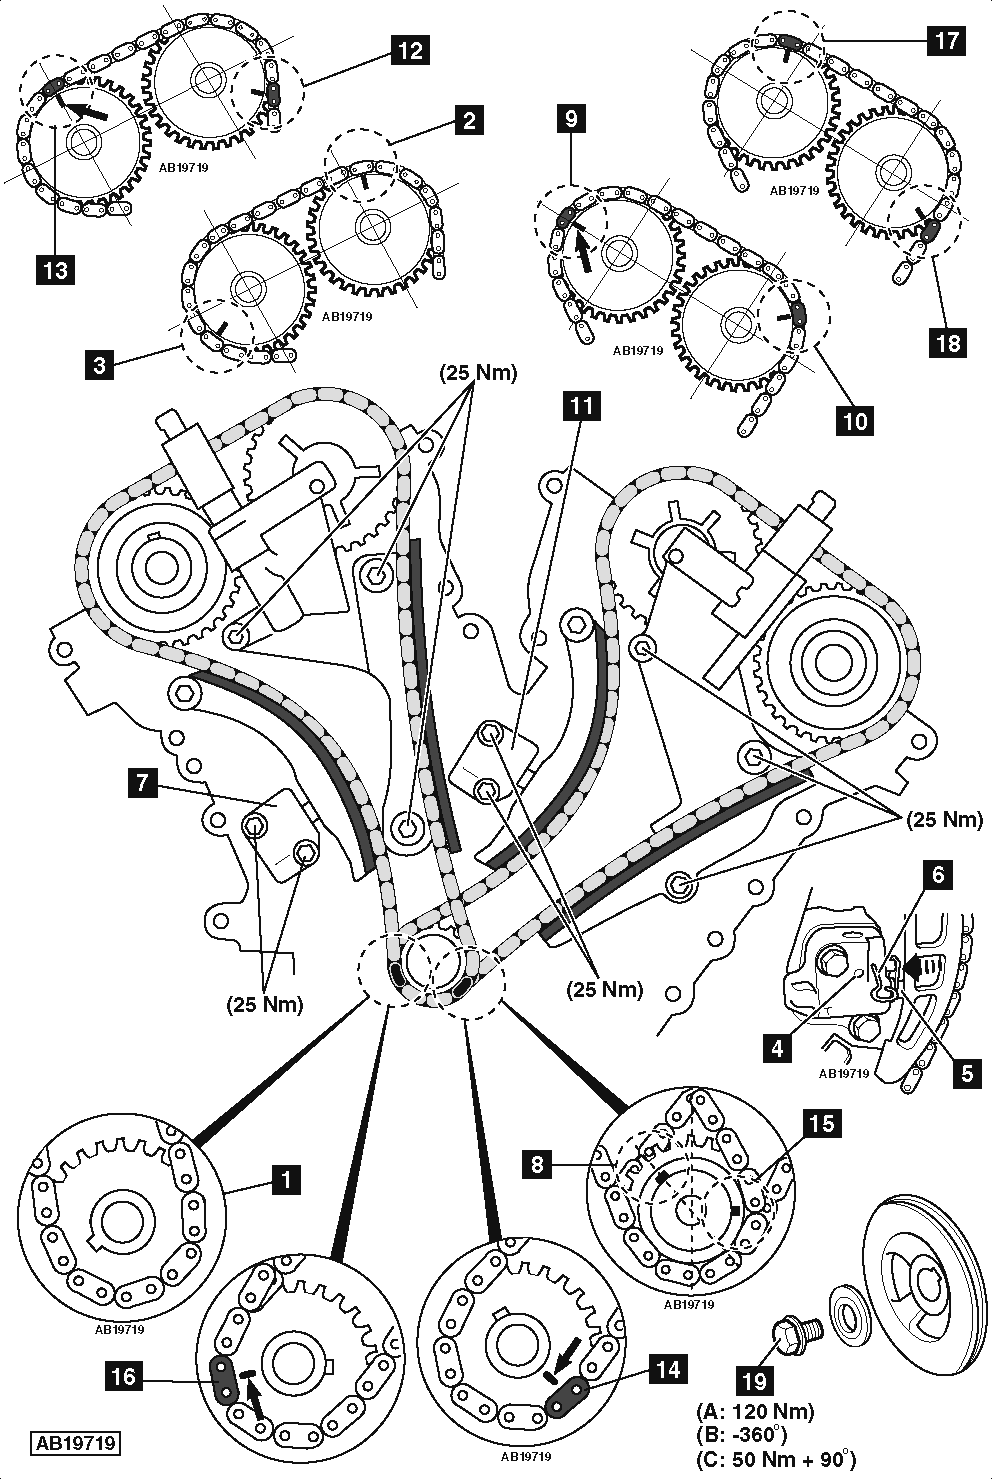 Chevrolet L99 Engine Diagram Chevy 3 1 Engine Diagram